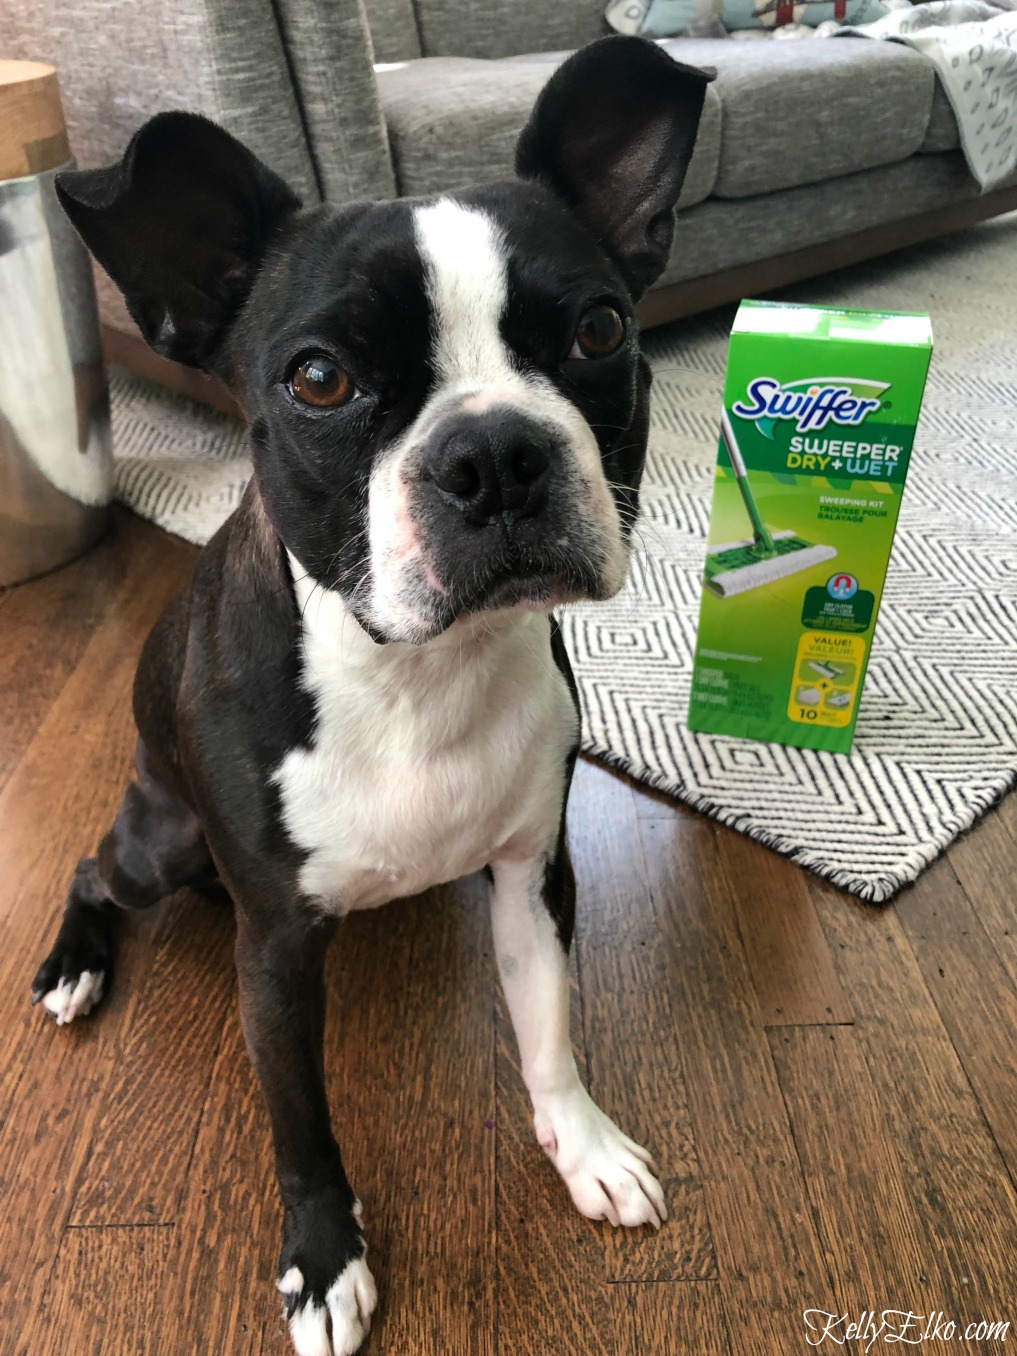 How to have a clean house with pets! kellyelko.com #ad swiffer #cleaningtips #cleanhouse #cleaning #bostonterrier